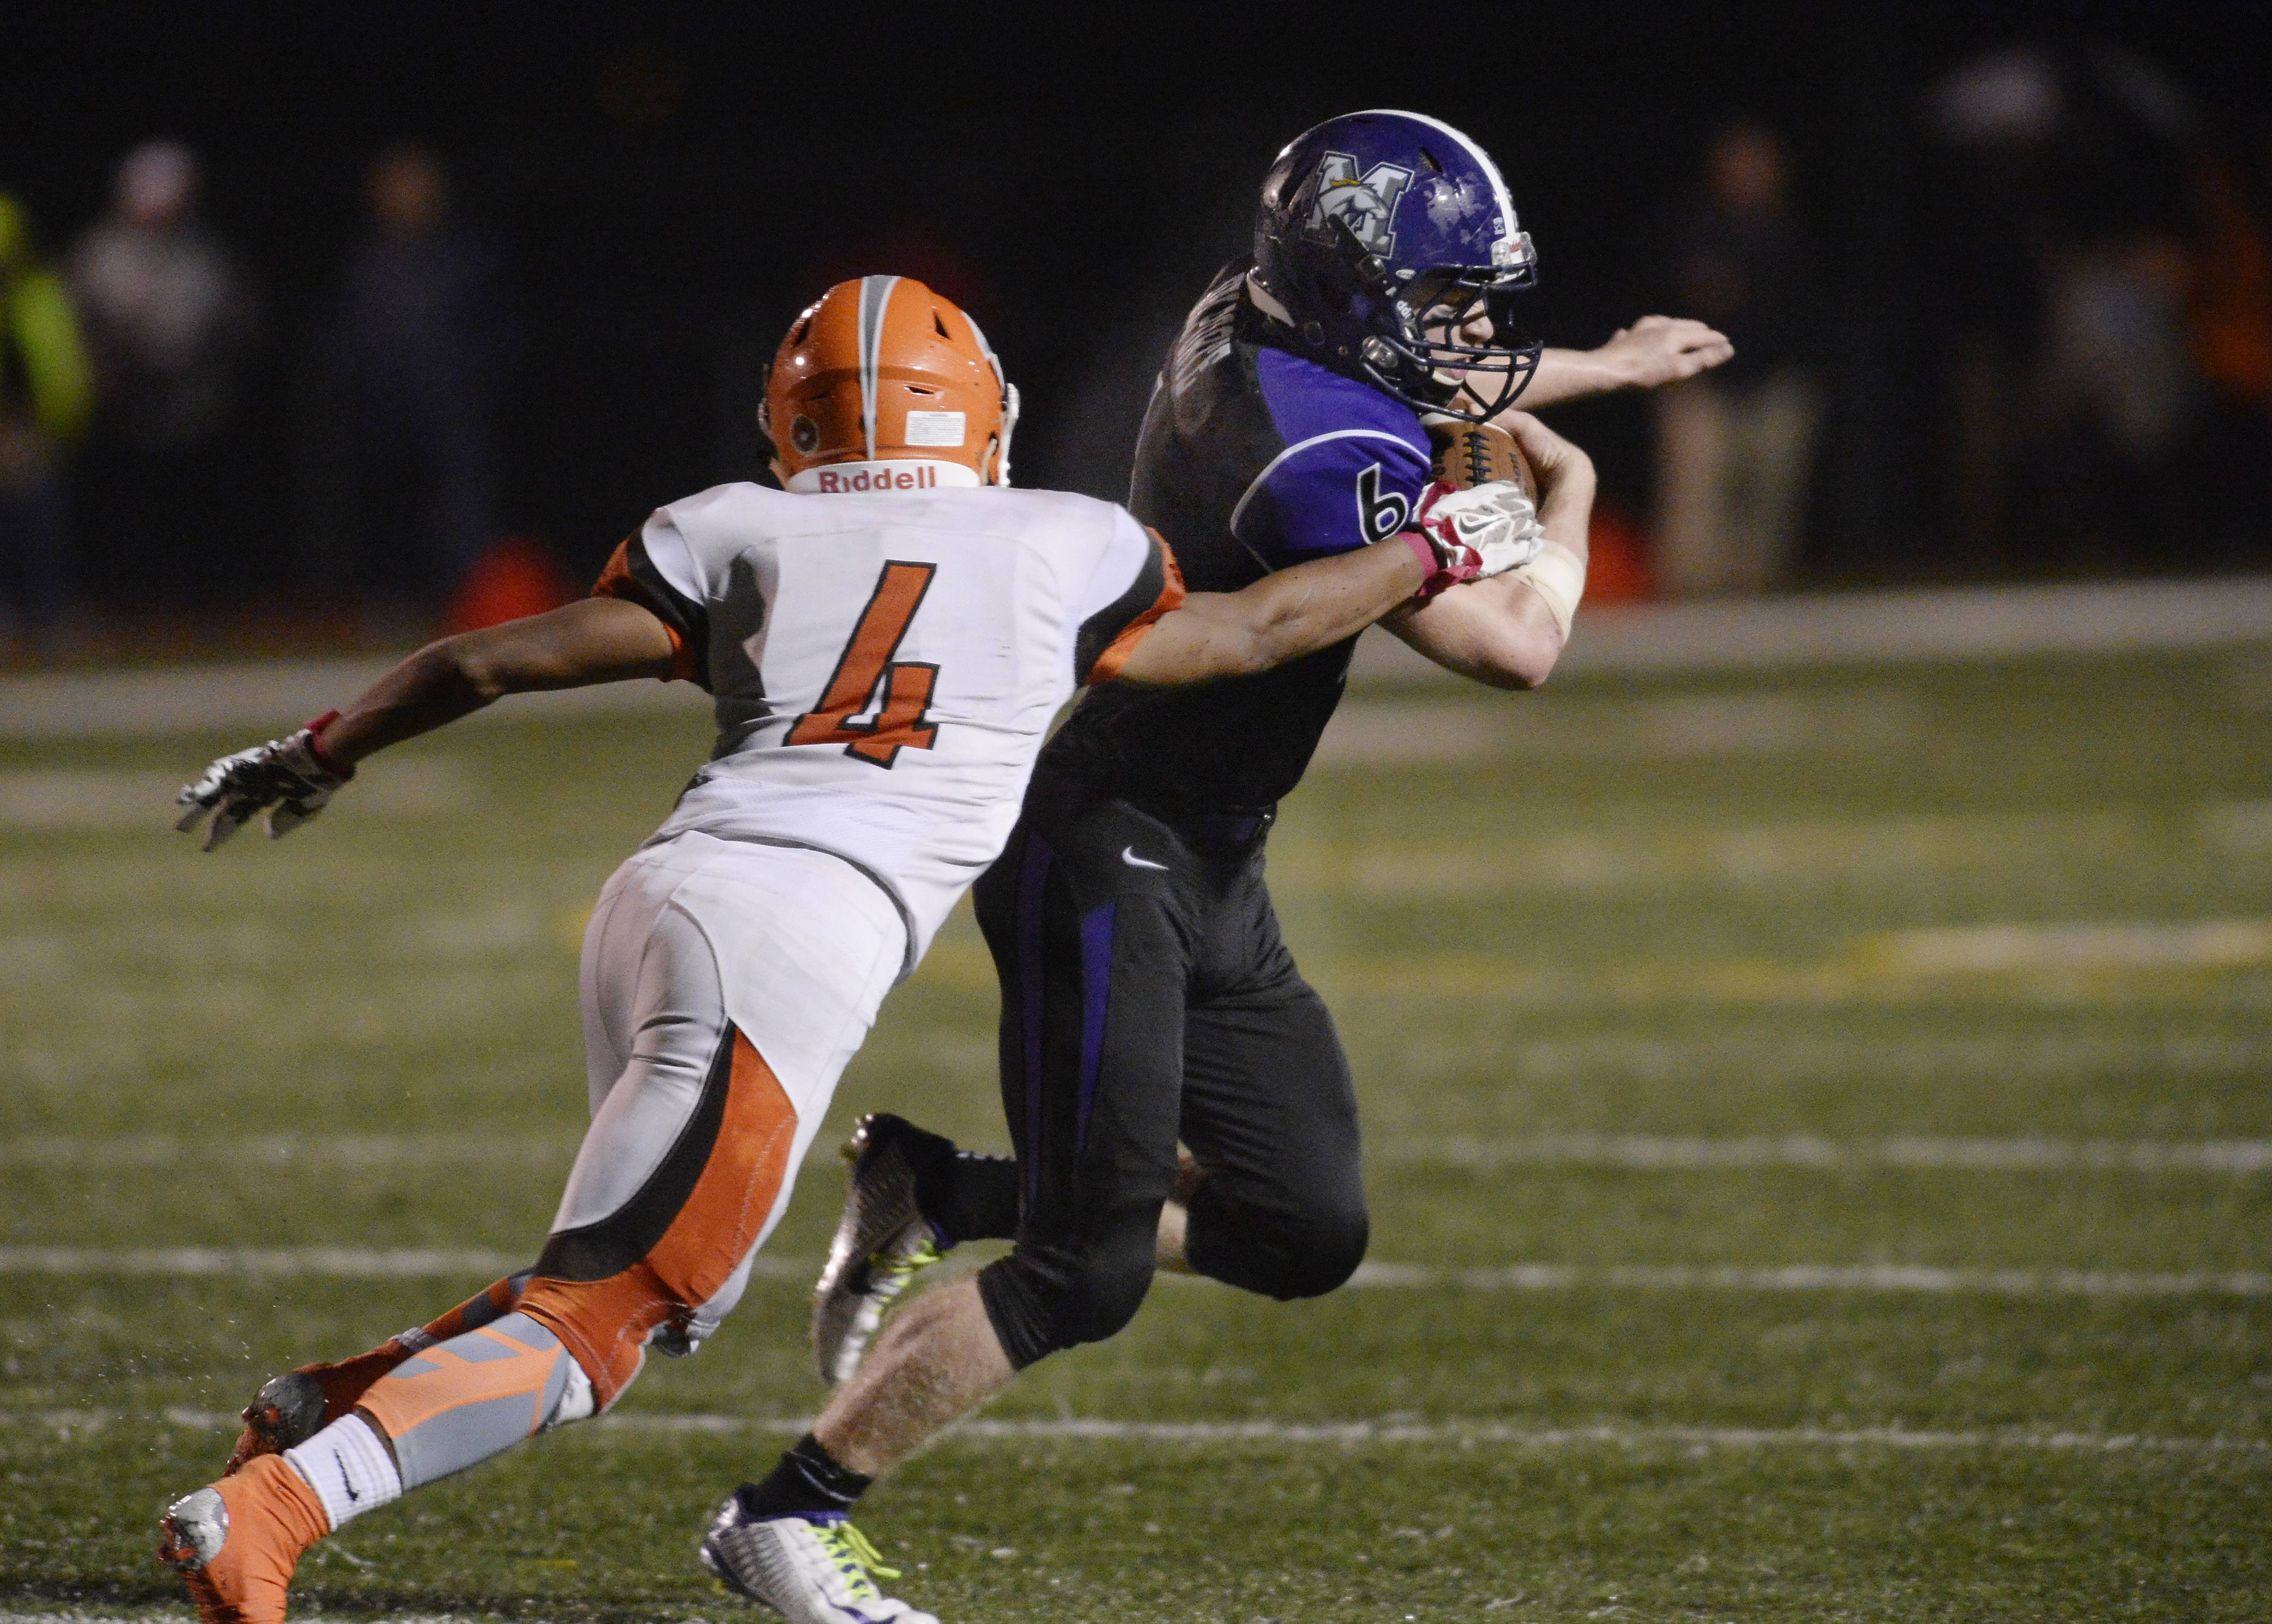 Rolling Meadows' Nick Delporte sheds Hersey defenders on his way to a TD last season. Delporte, a three-year starter for the Mustangs, will be in action in Friday's nonconference season opener hosted by St. Viator.